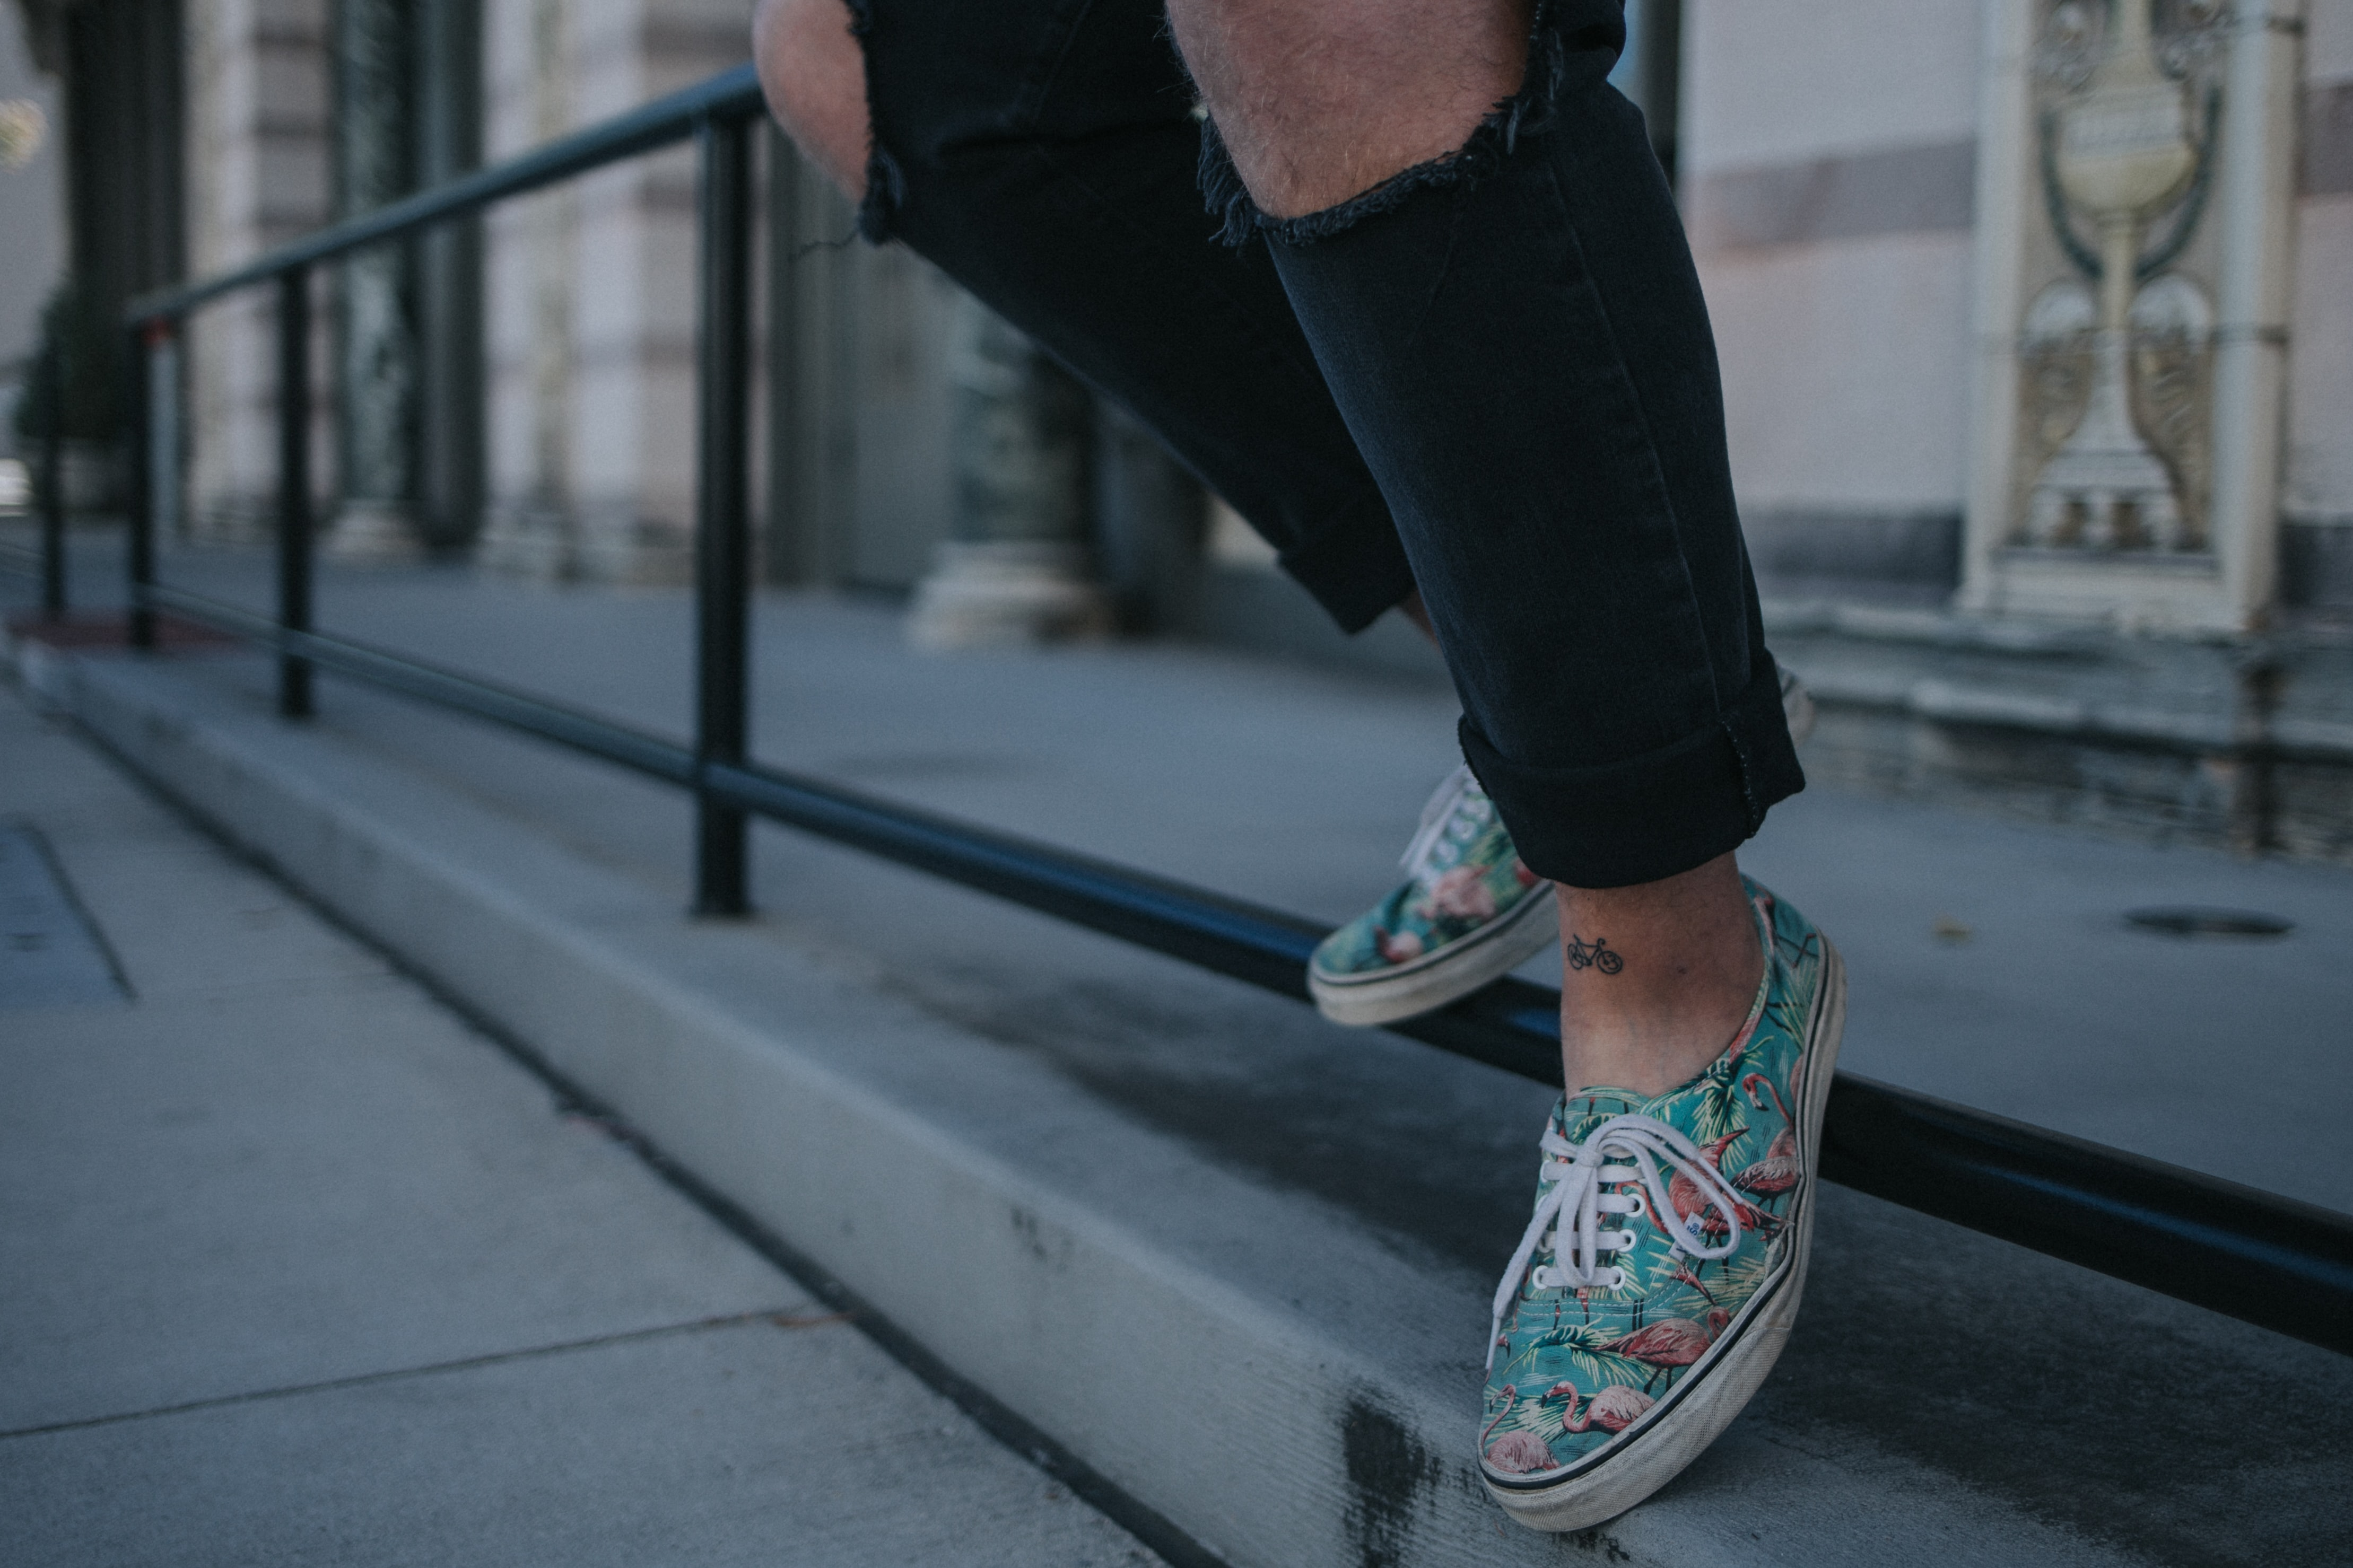 person wearing green-and-white low-top sneakers